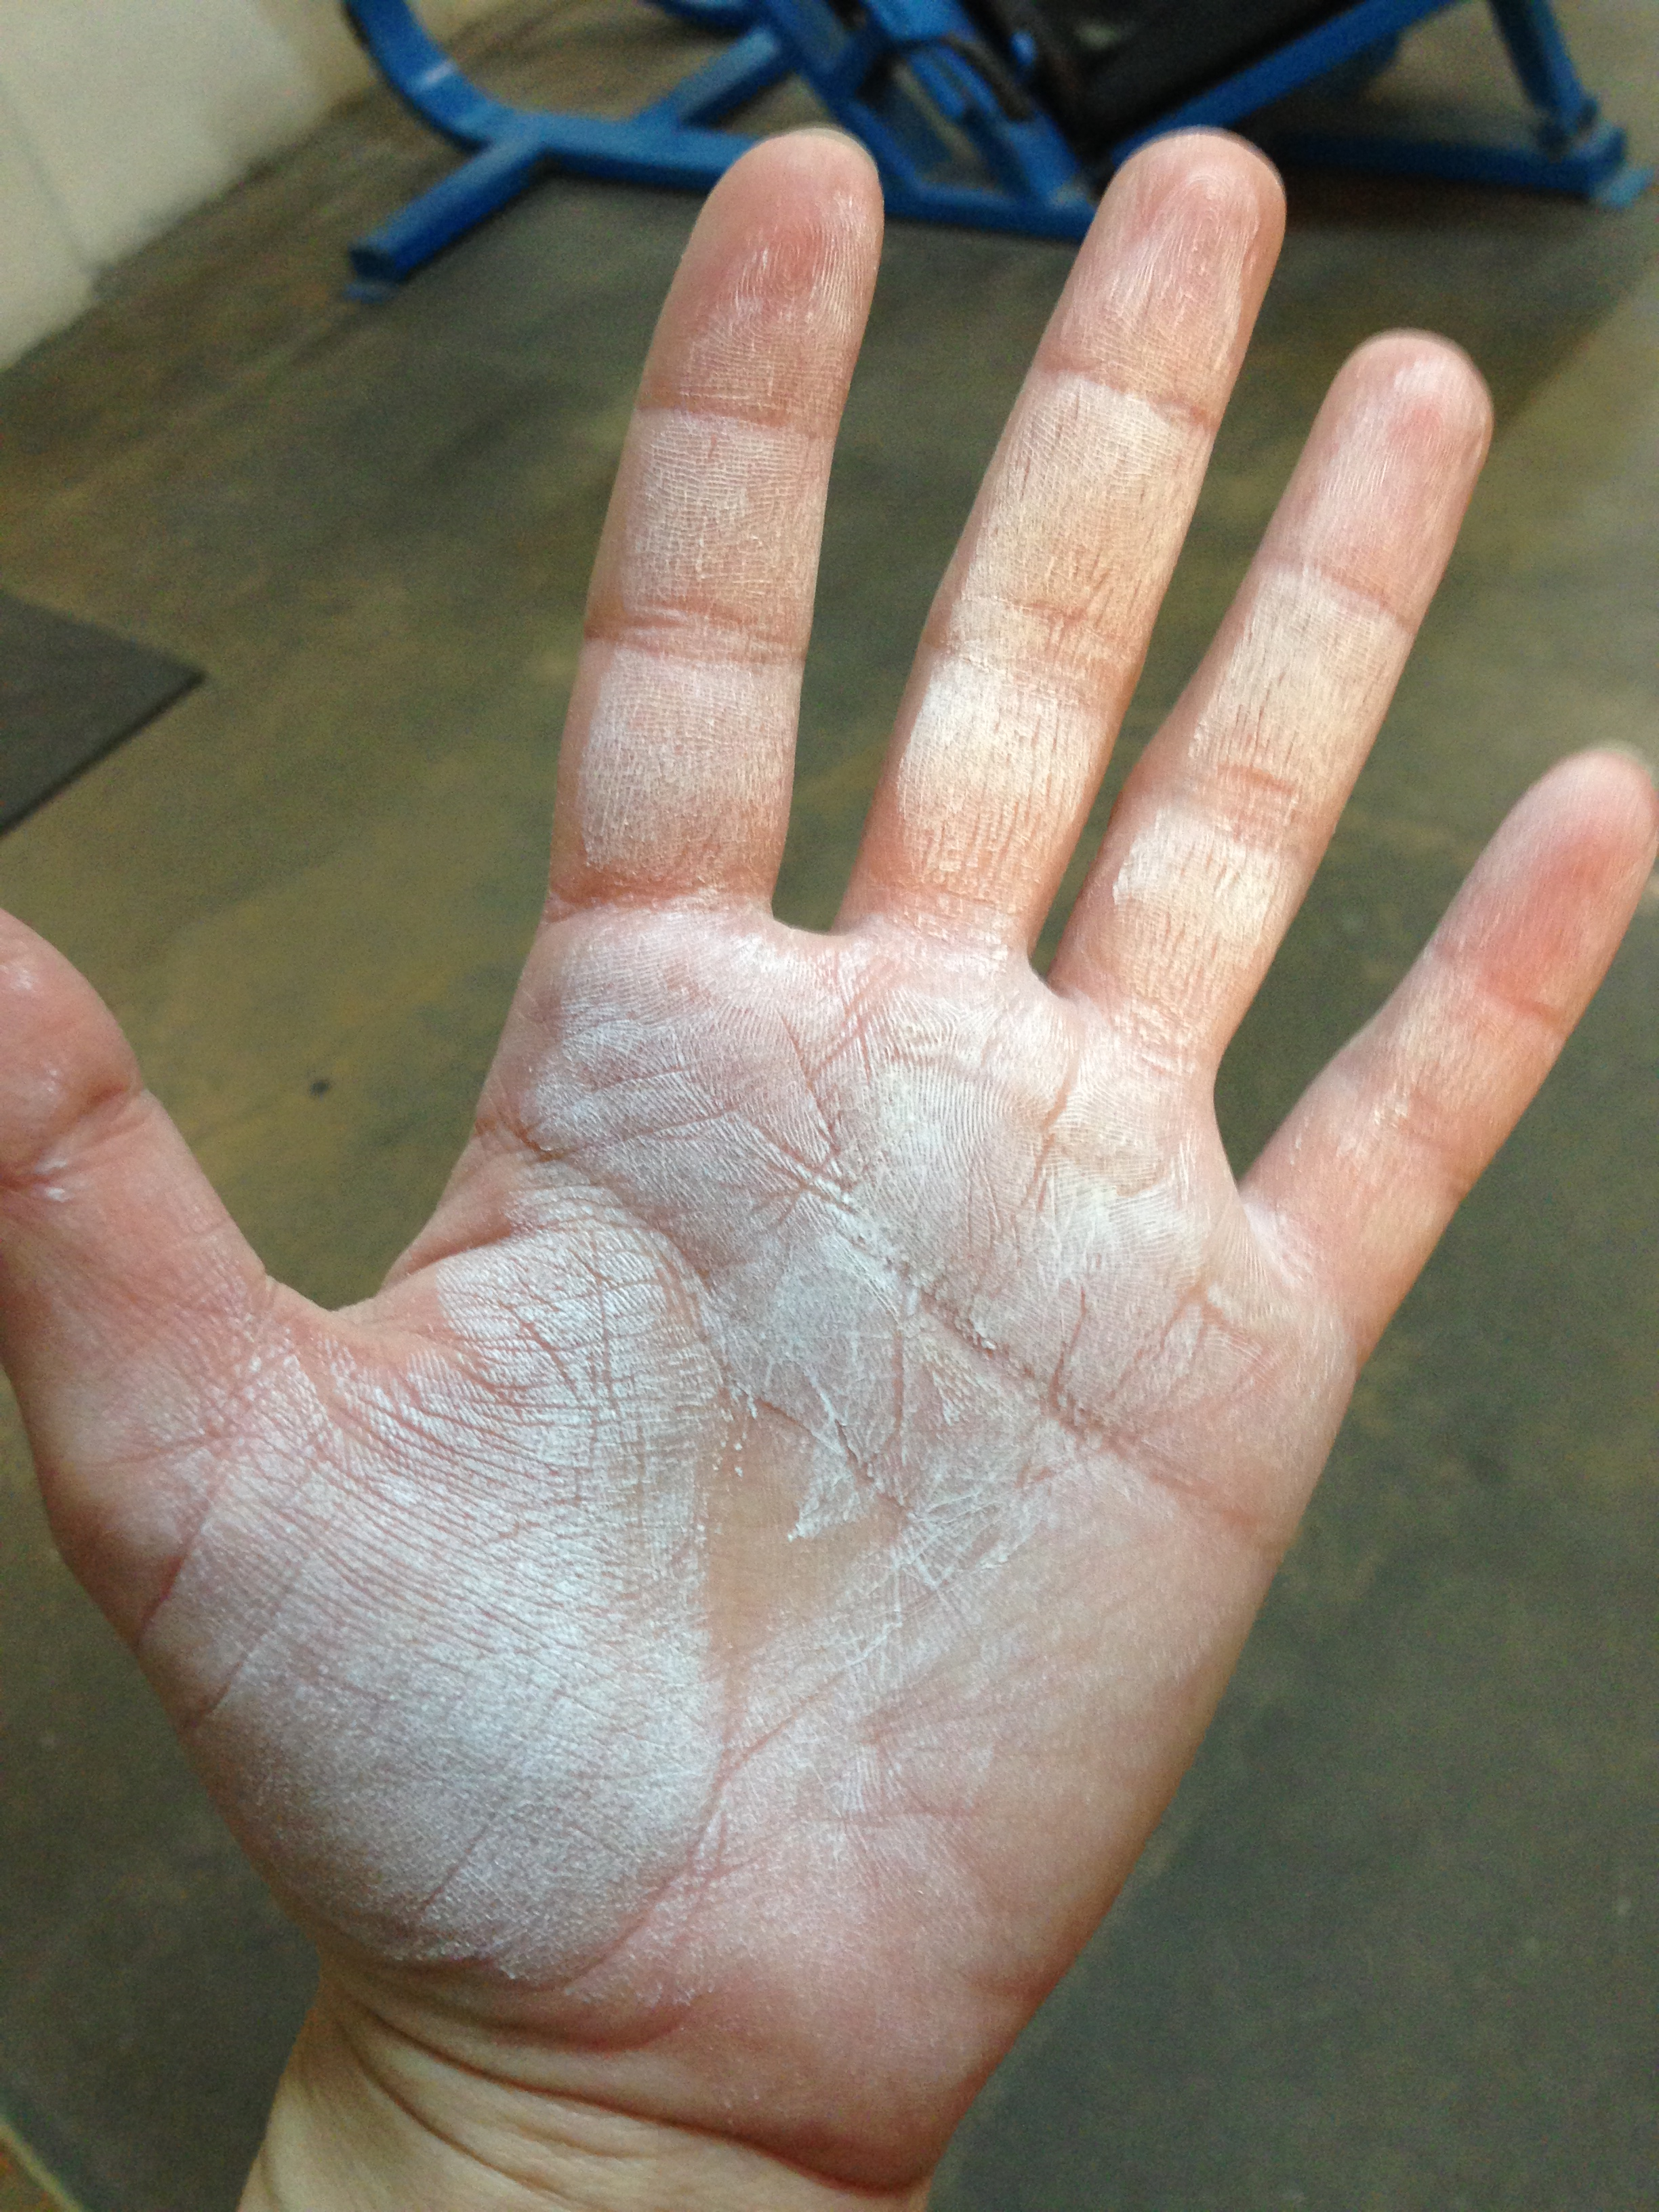 I love my callouses. At least the unchalked area makes a little heart in the middle of my palm. That's feminine, right?